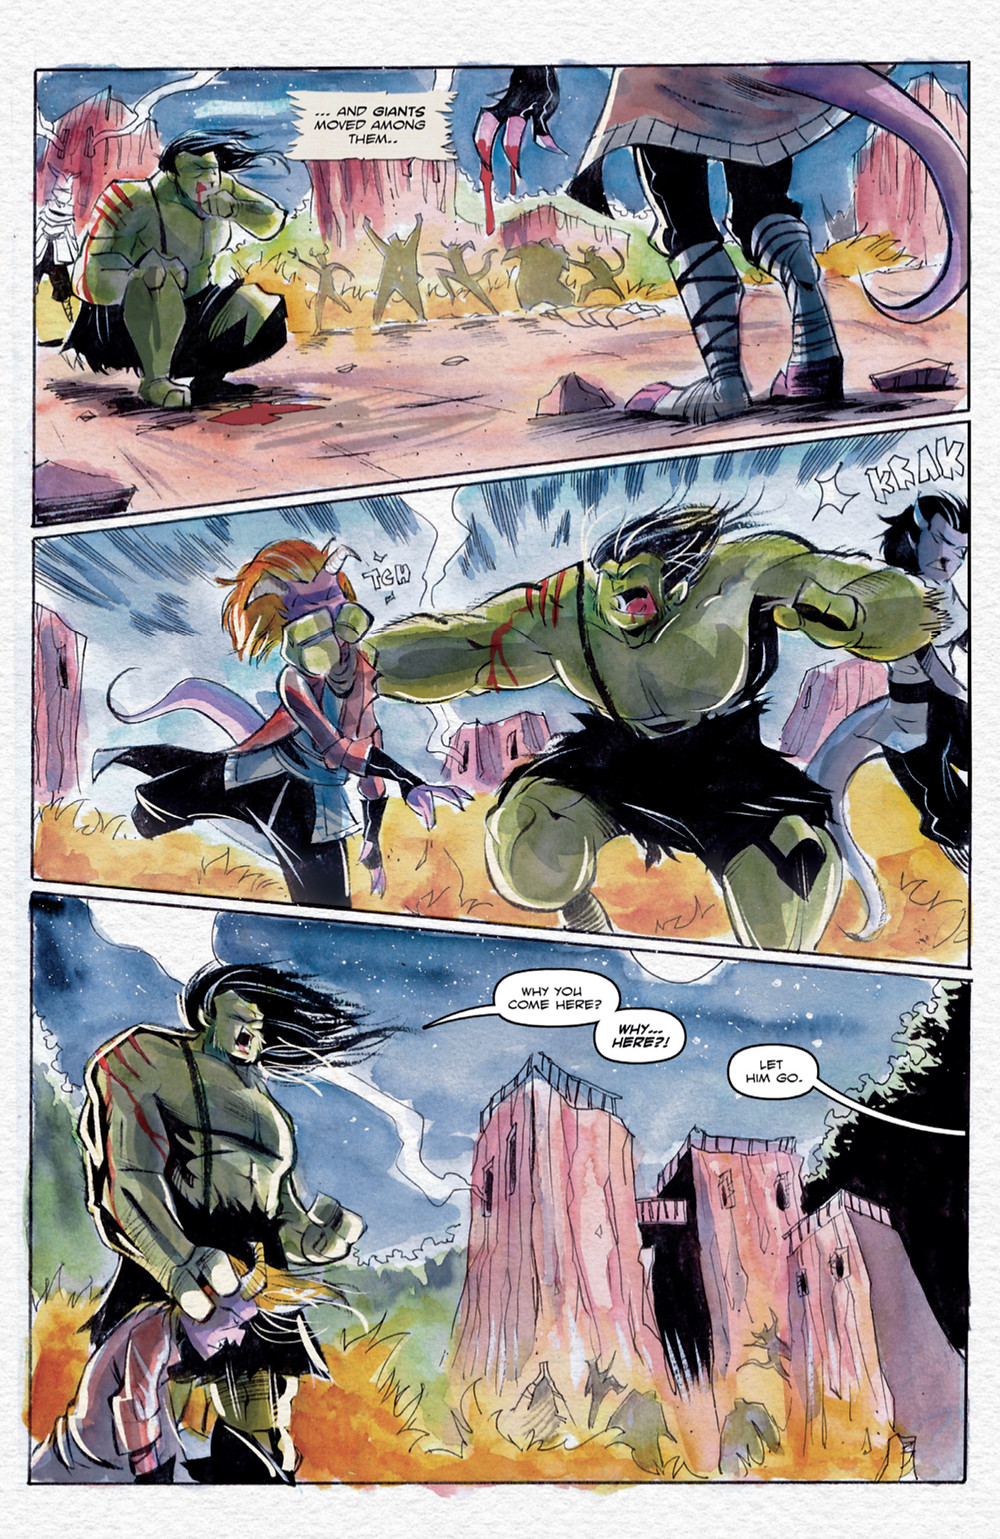 Ogre, issue #1, page 3, self-published, Salley/Daley